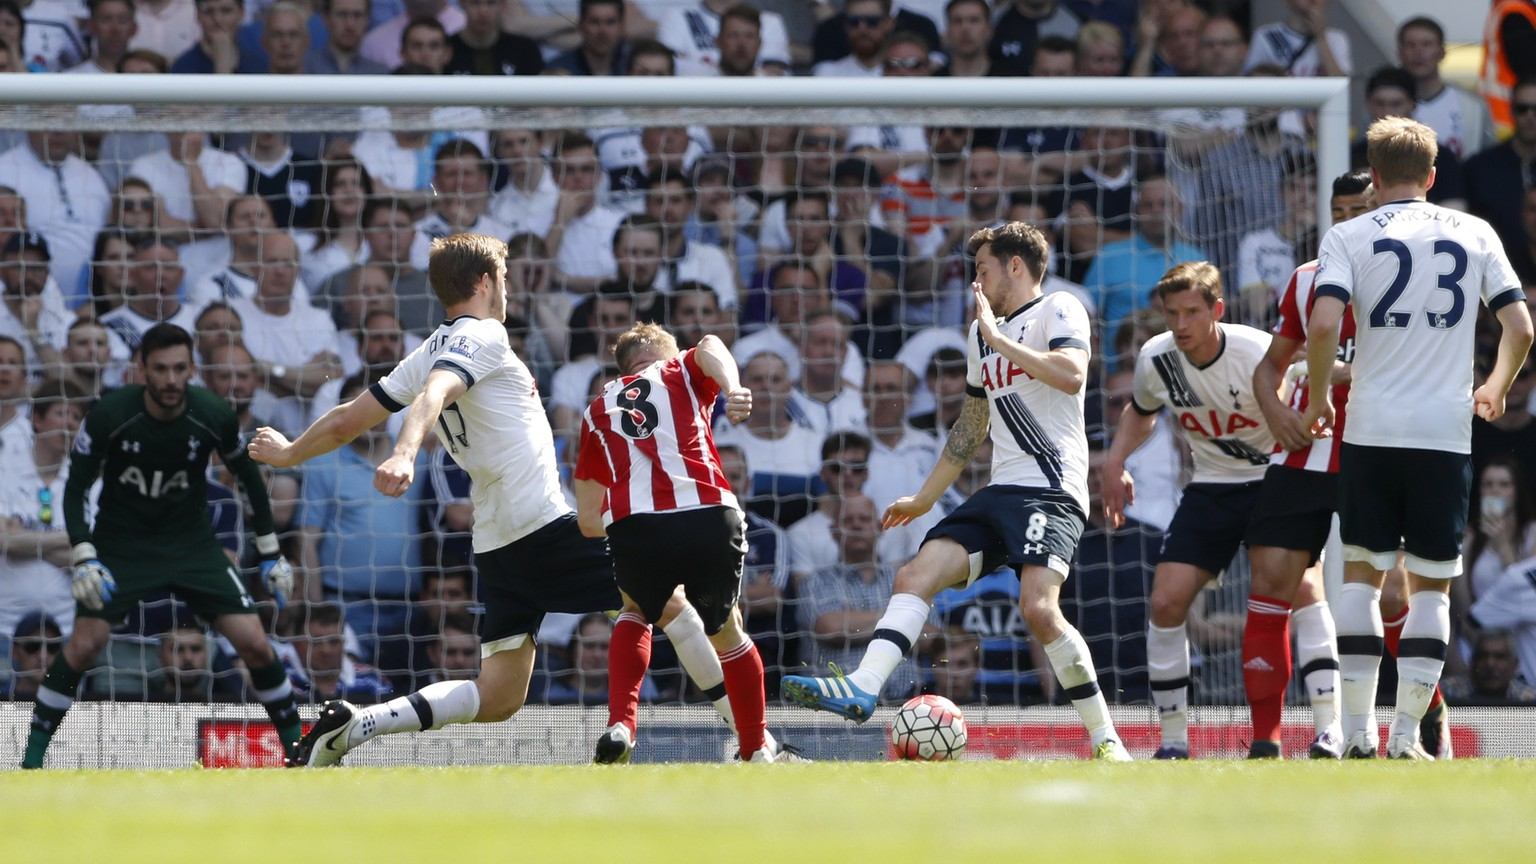 Britain Soccer Football - Tottenham Hotspur v Southampton - Barclays Premier League - White Hart Lane - 8/5/16